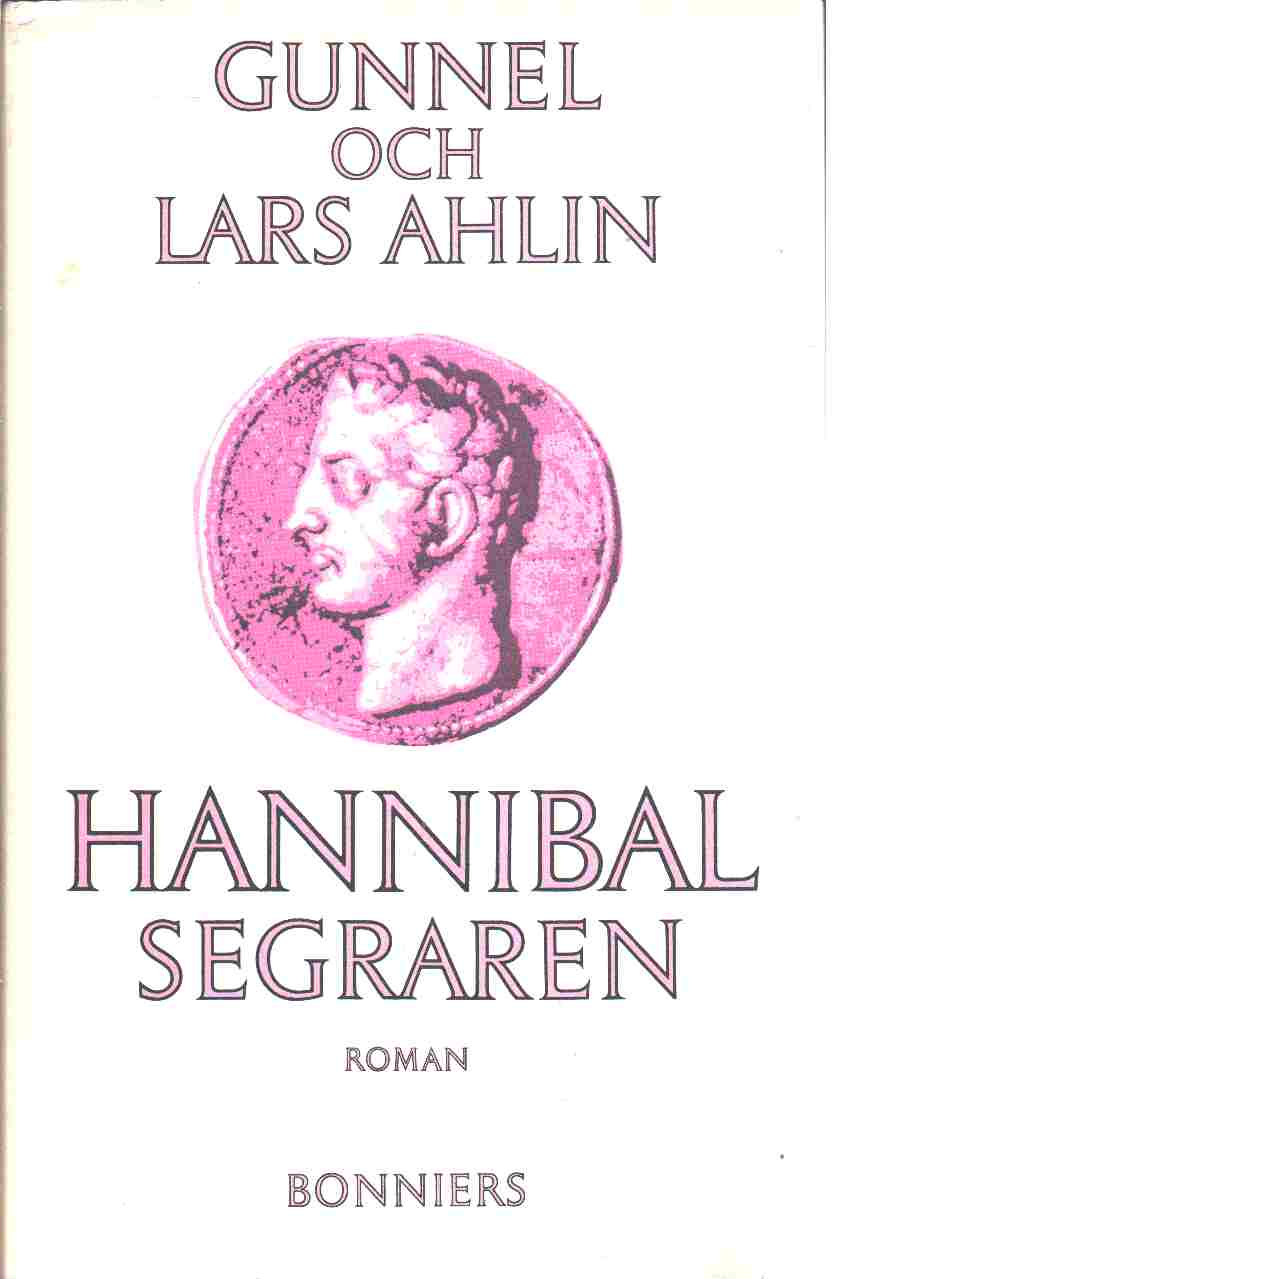 Hannibal segraren - Ahlin, Gunnel och in, Lars